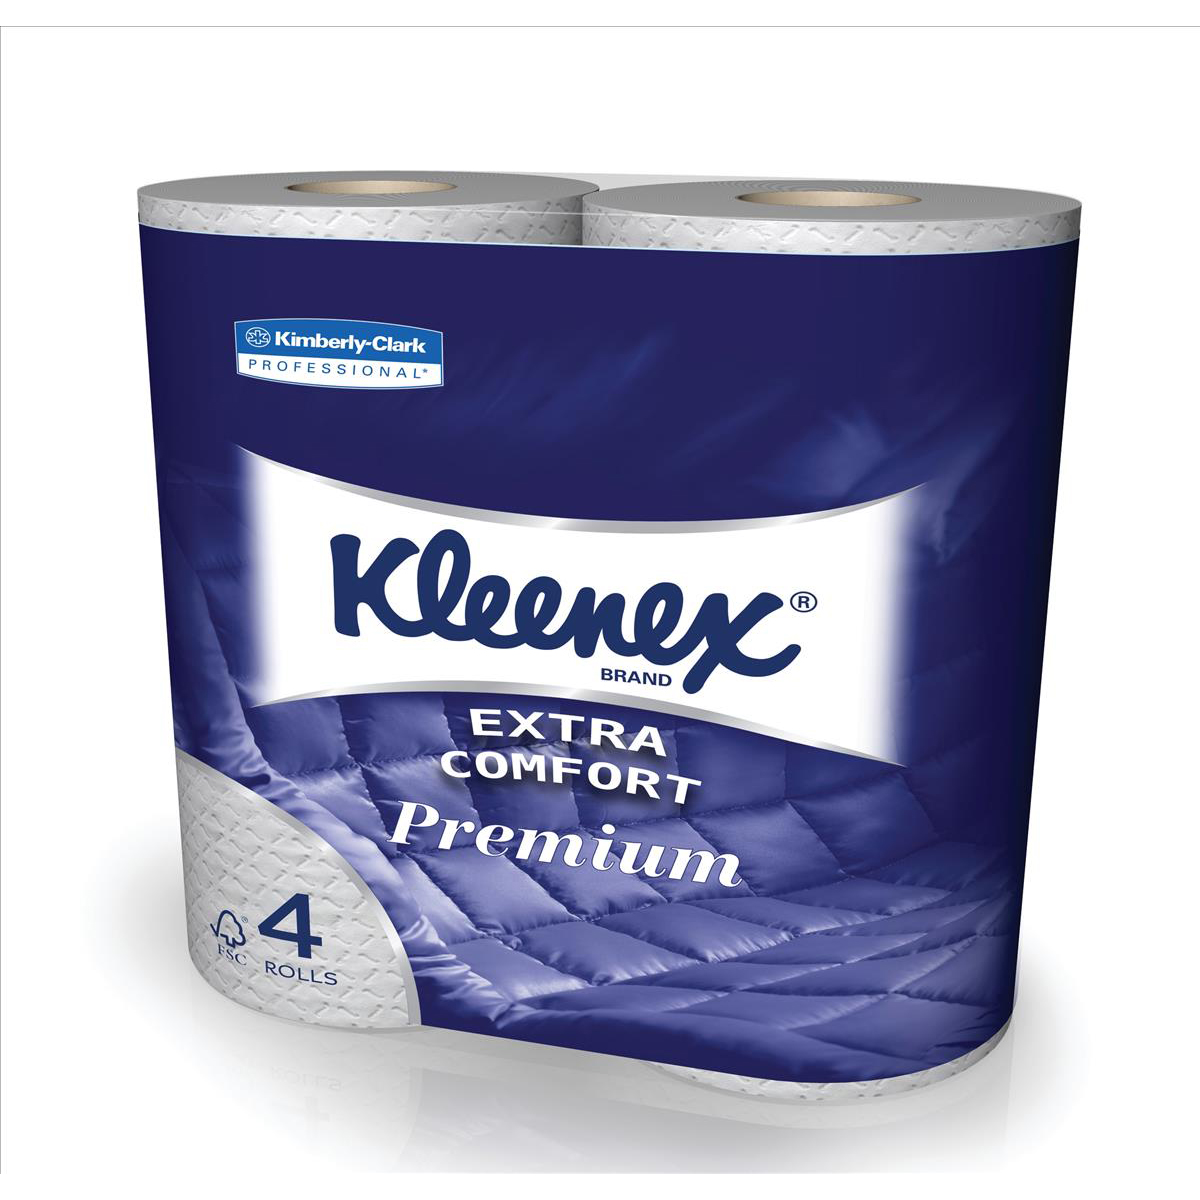 Kleenex Comfort Small Toilet Roll Pkd 4 Rolls of 160 Sheets 2-ply White Ref 8484 Pack 6